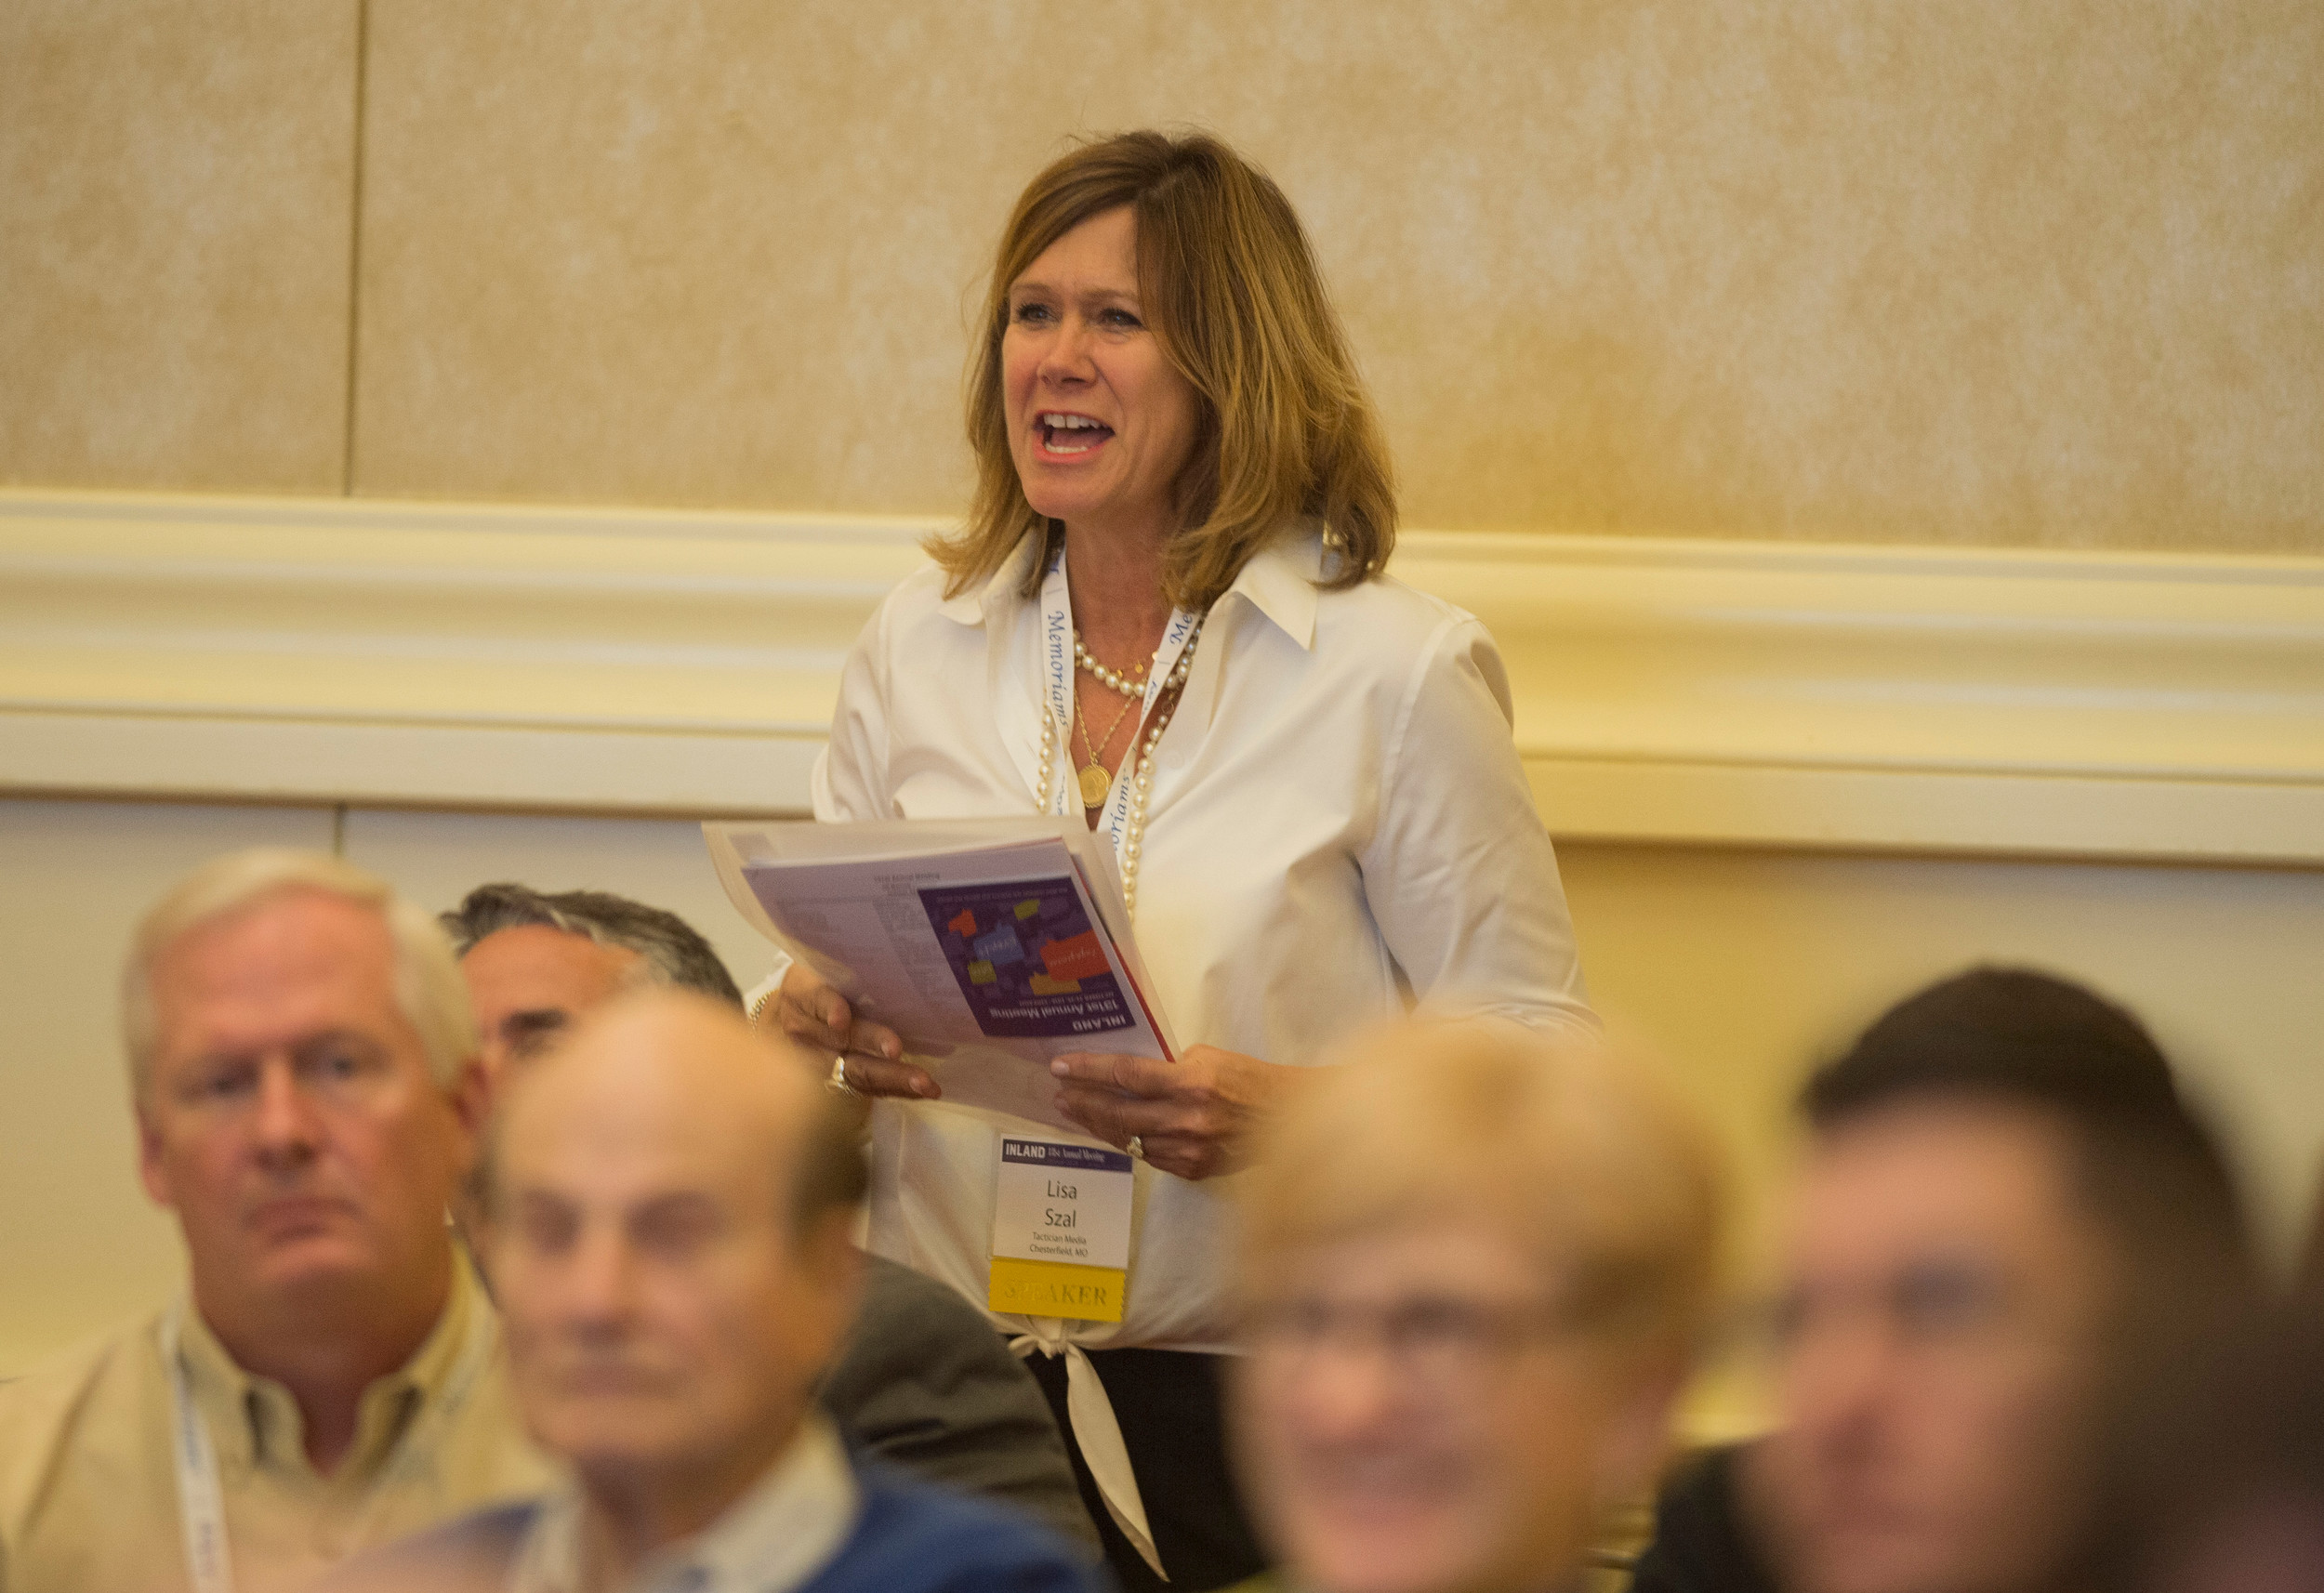 Lisa Szal, VP of Business Development, Tactician Media at the 131st Annual Meeting of Inland Press Association.